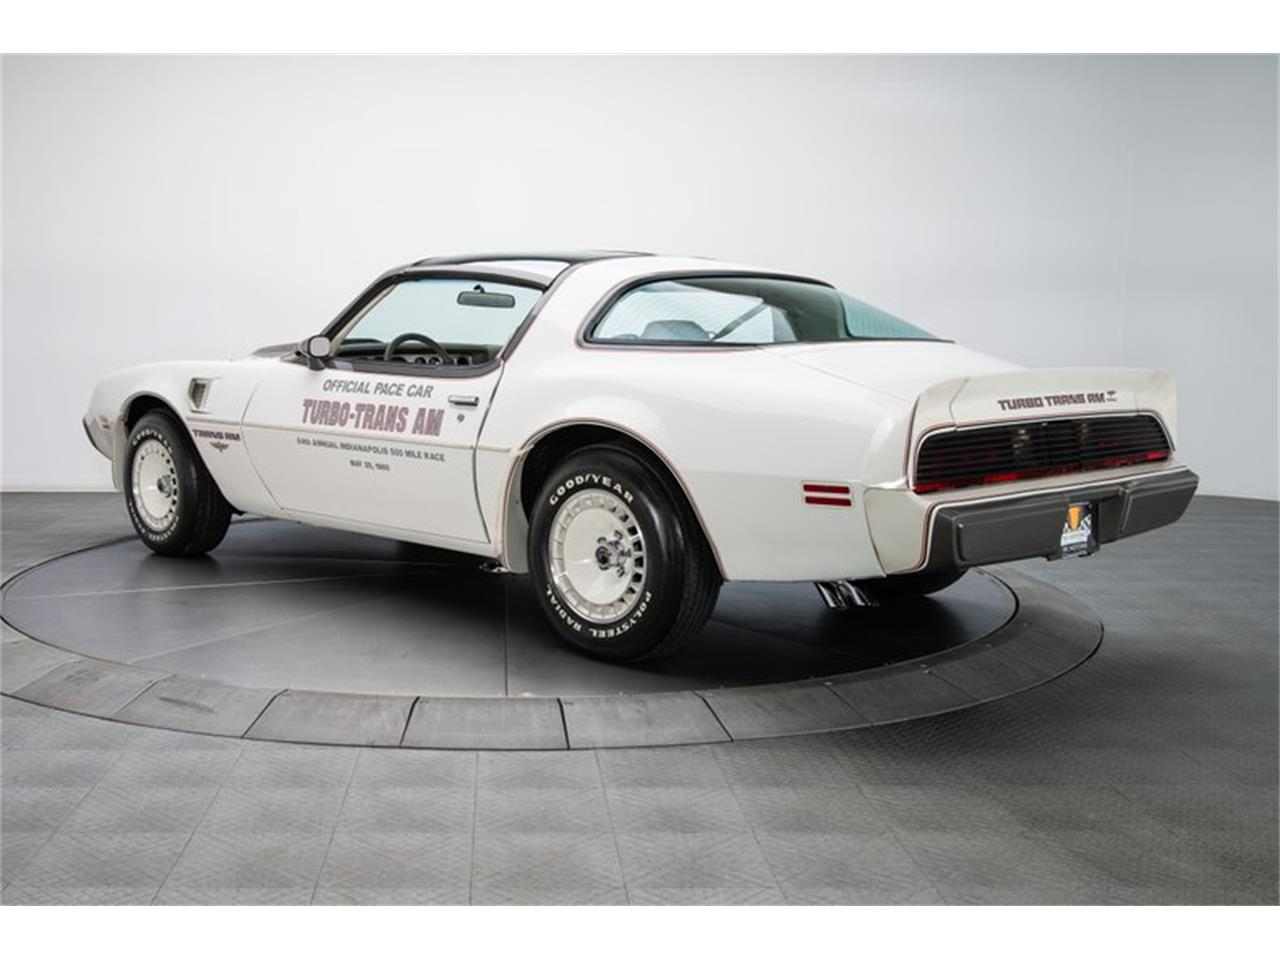 1980 Pontiac Firebird Trans Am Turbo Indy Pace Car Edition for sale in Charlotte, NC – photo 4